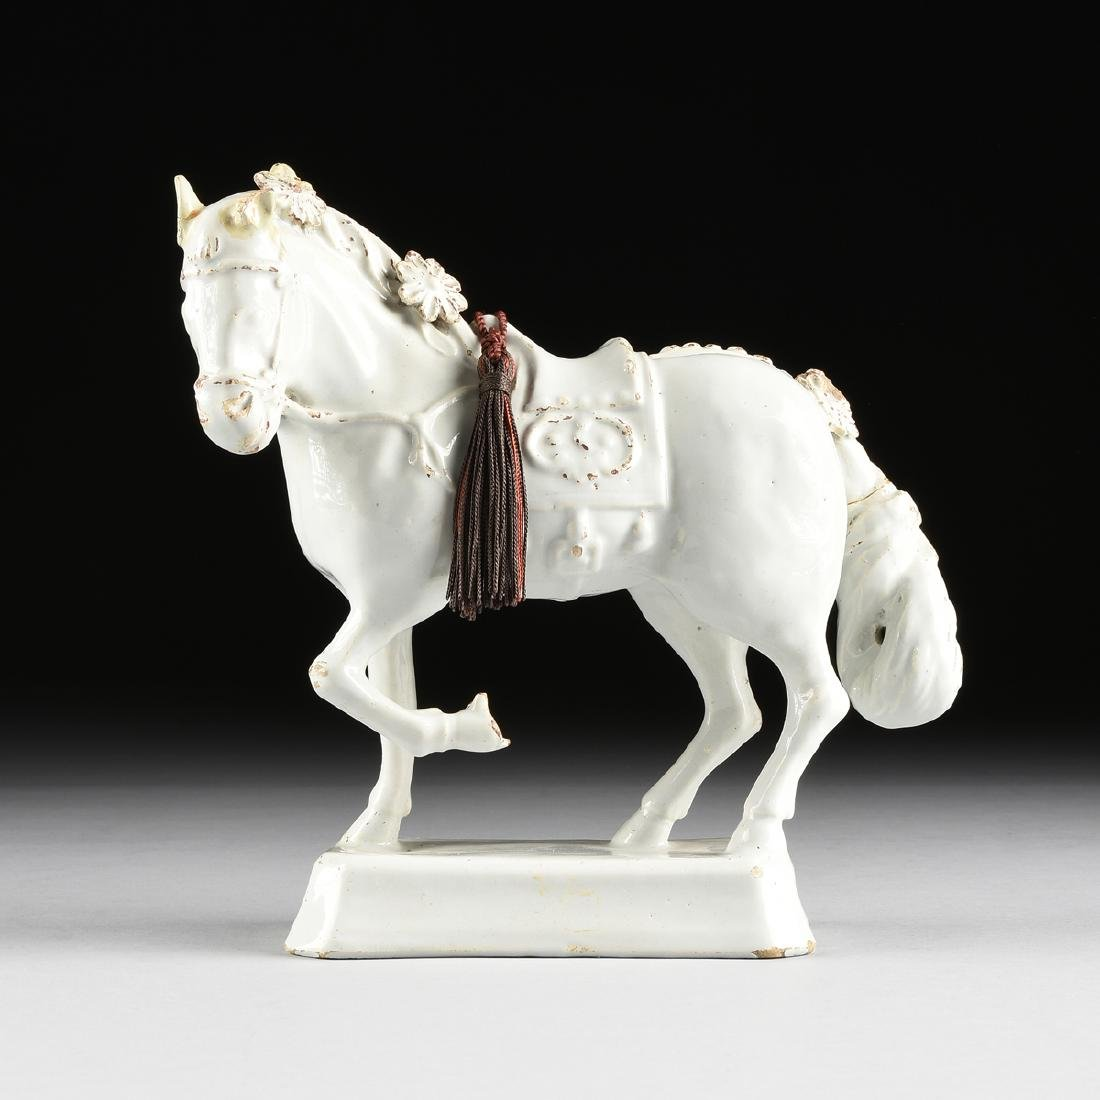 A CHINESE EXPORT GLAZED STONEWARE FIGURE OF A HORSE,